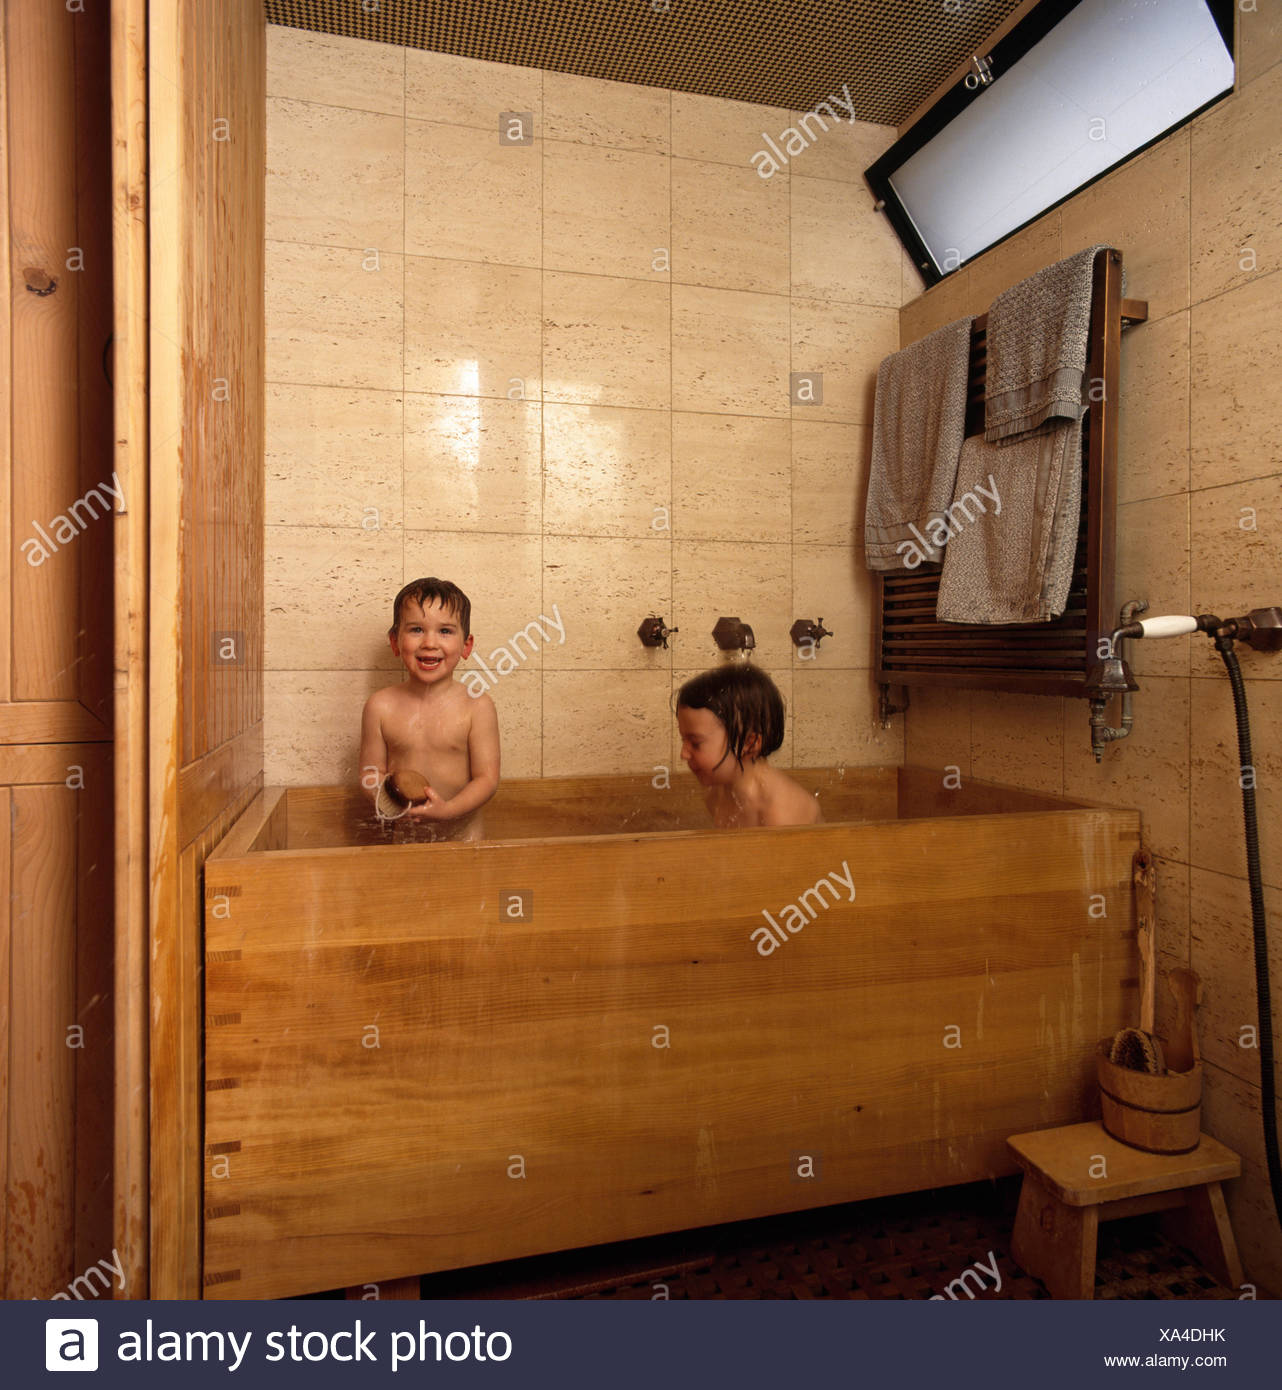 Two small children in a wooden bathtub FOR EDITORIAL USE ONLY Stock ...